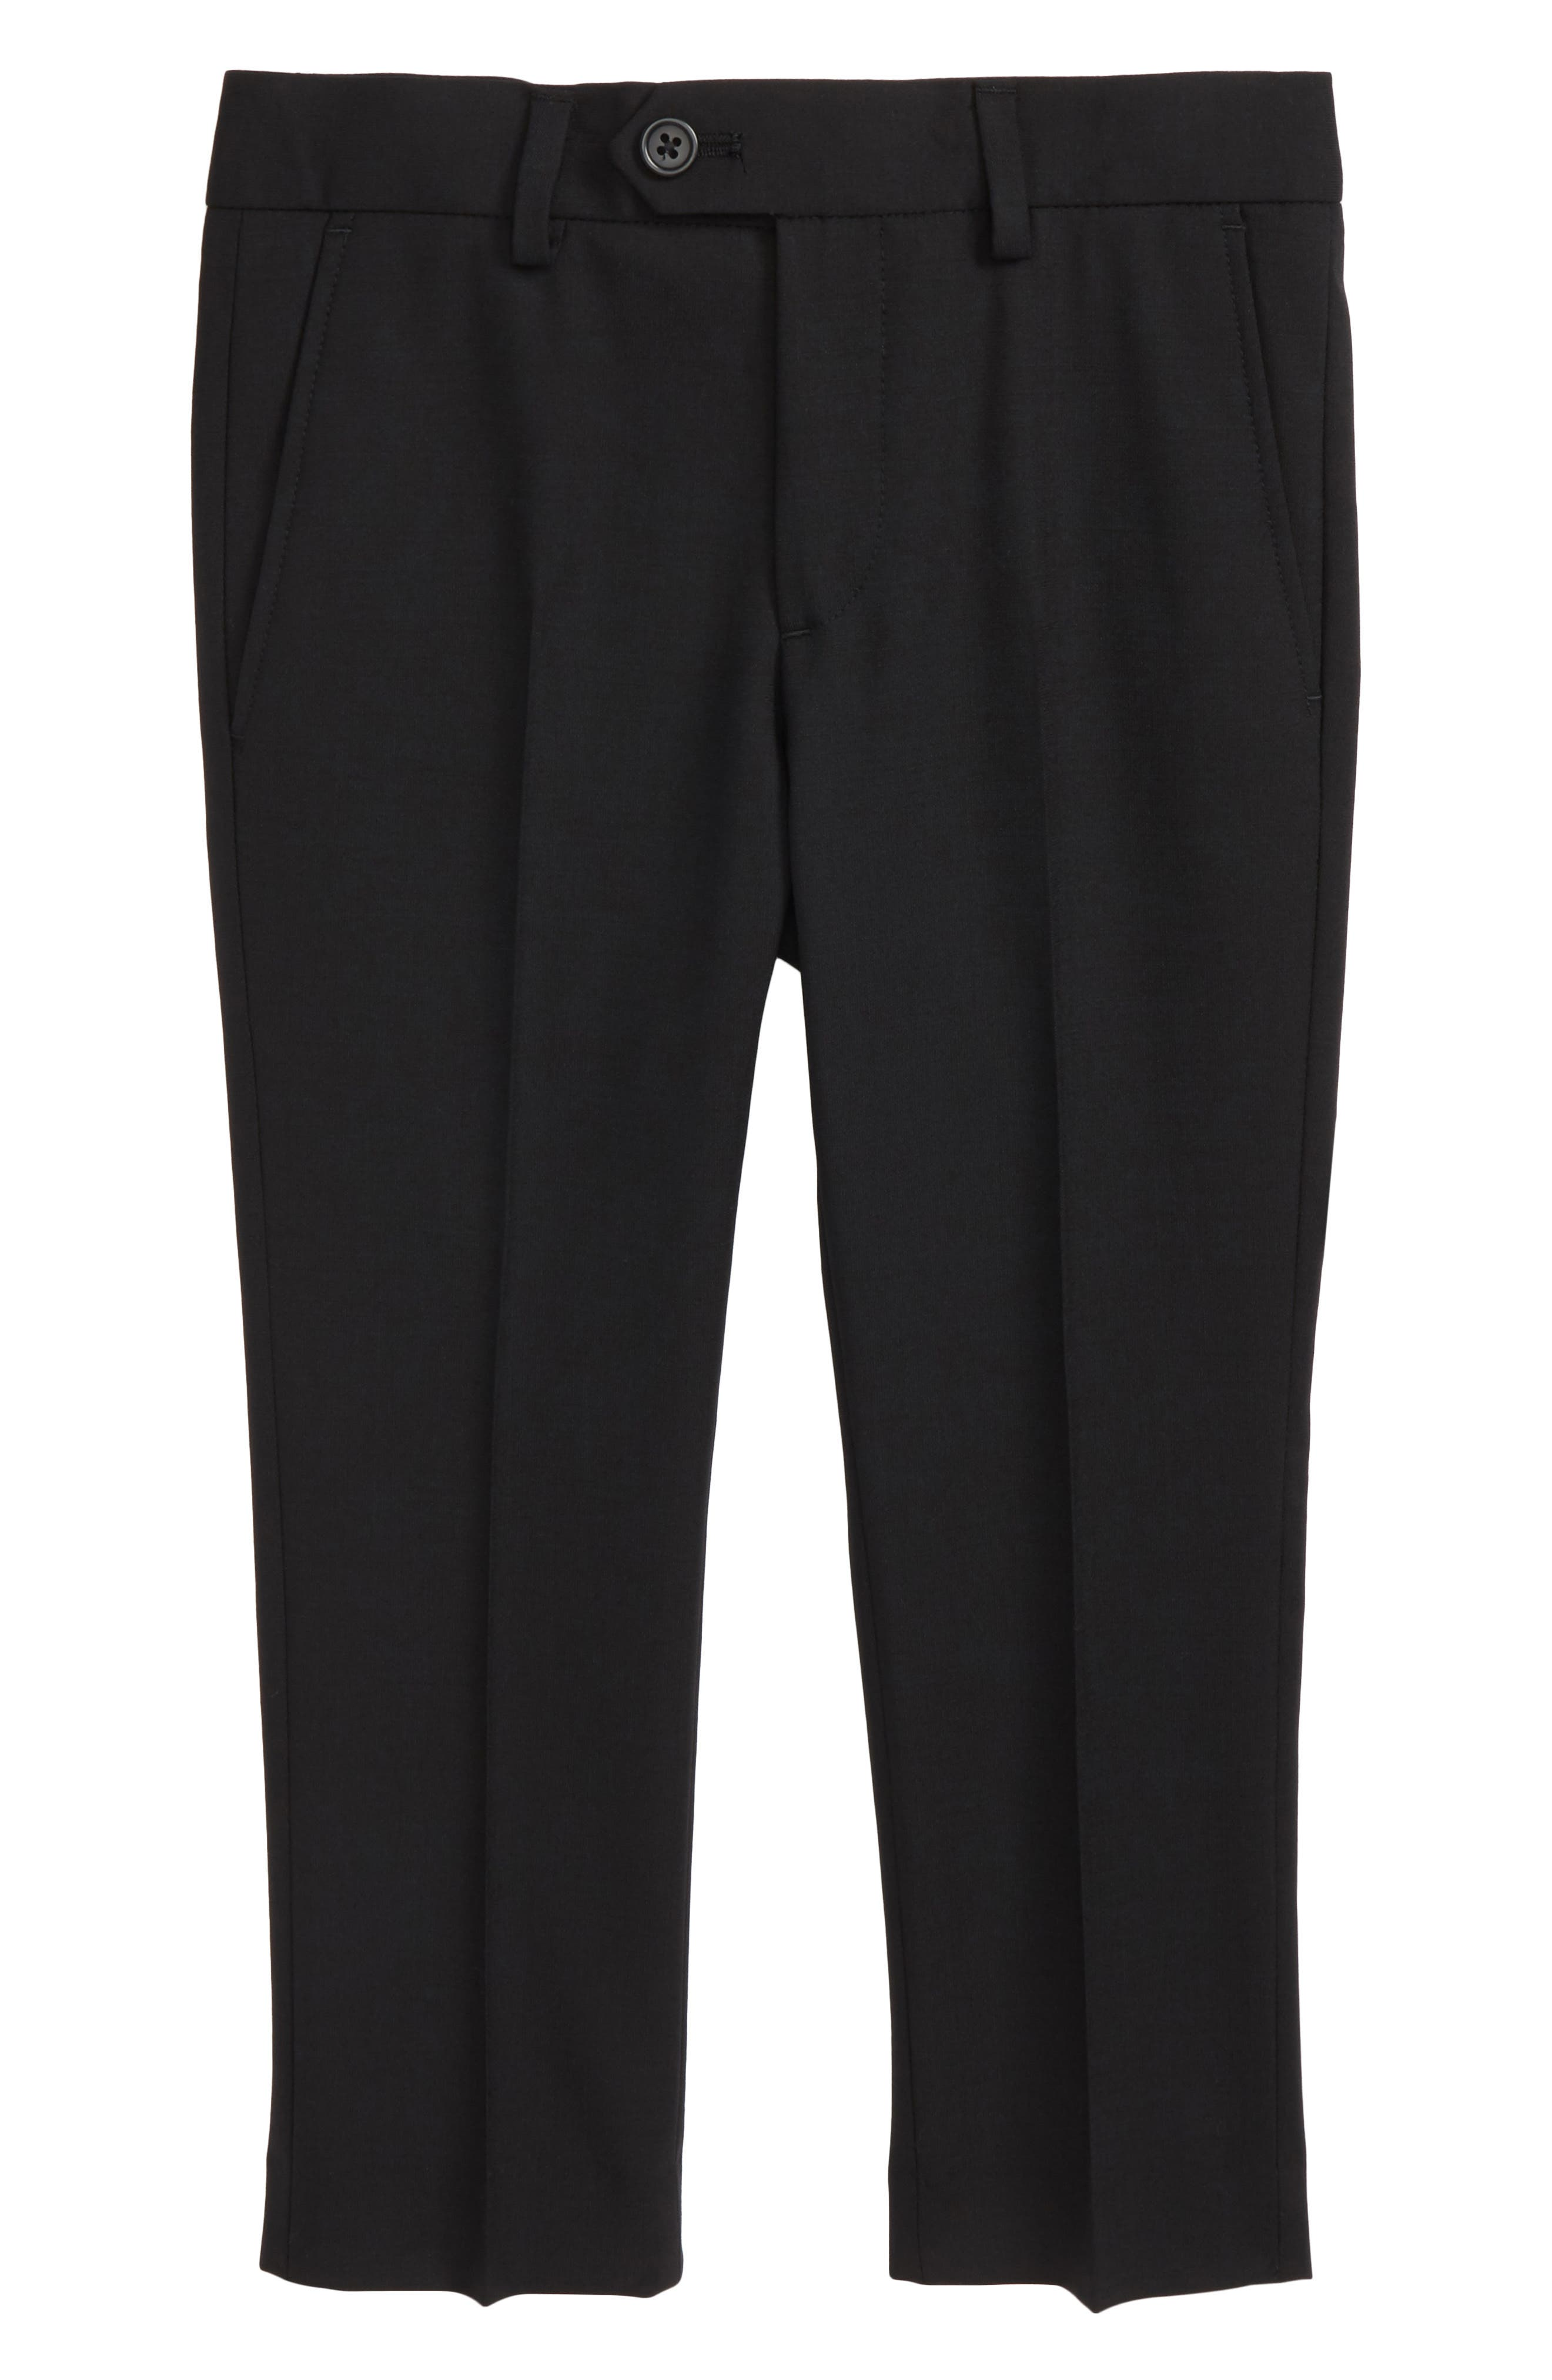 TALLIA Solid Wool Blend Flat Front Trousers, Main, color, BLACK